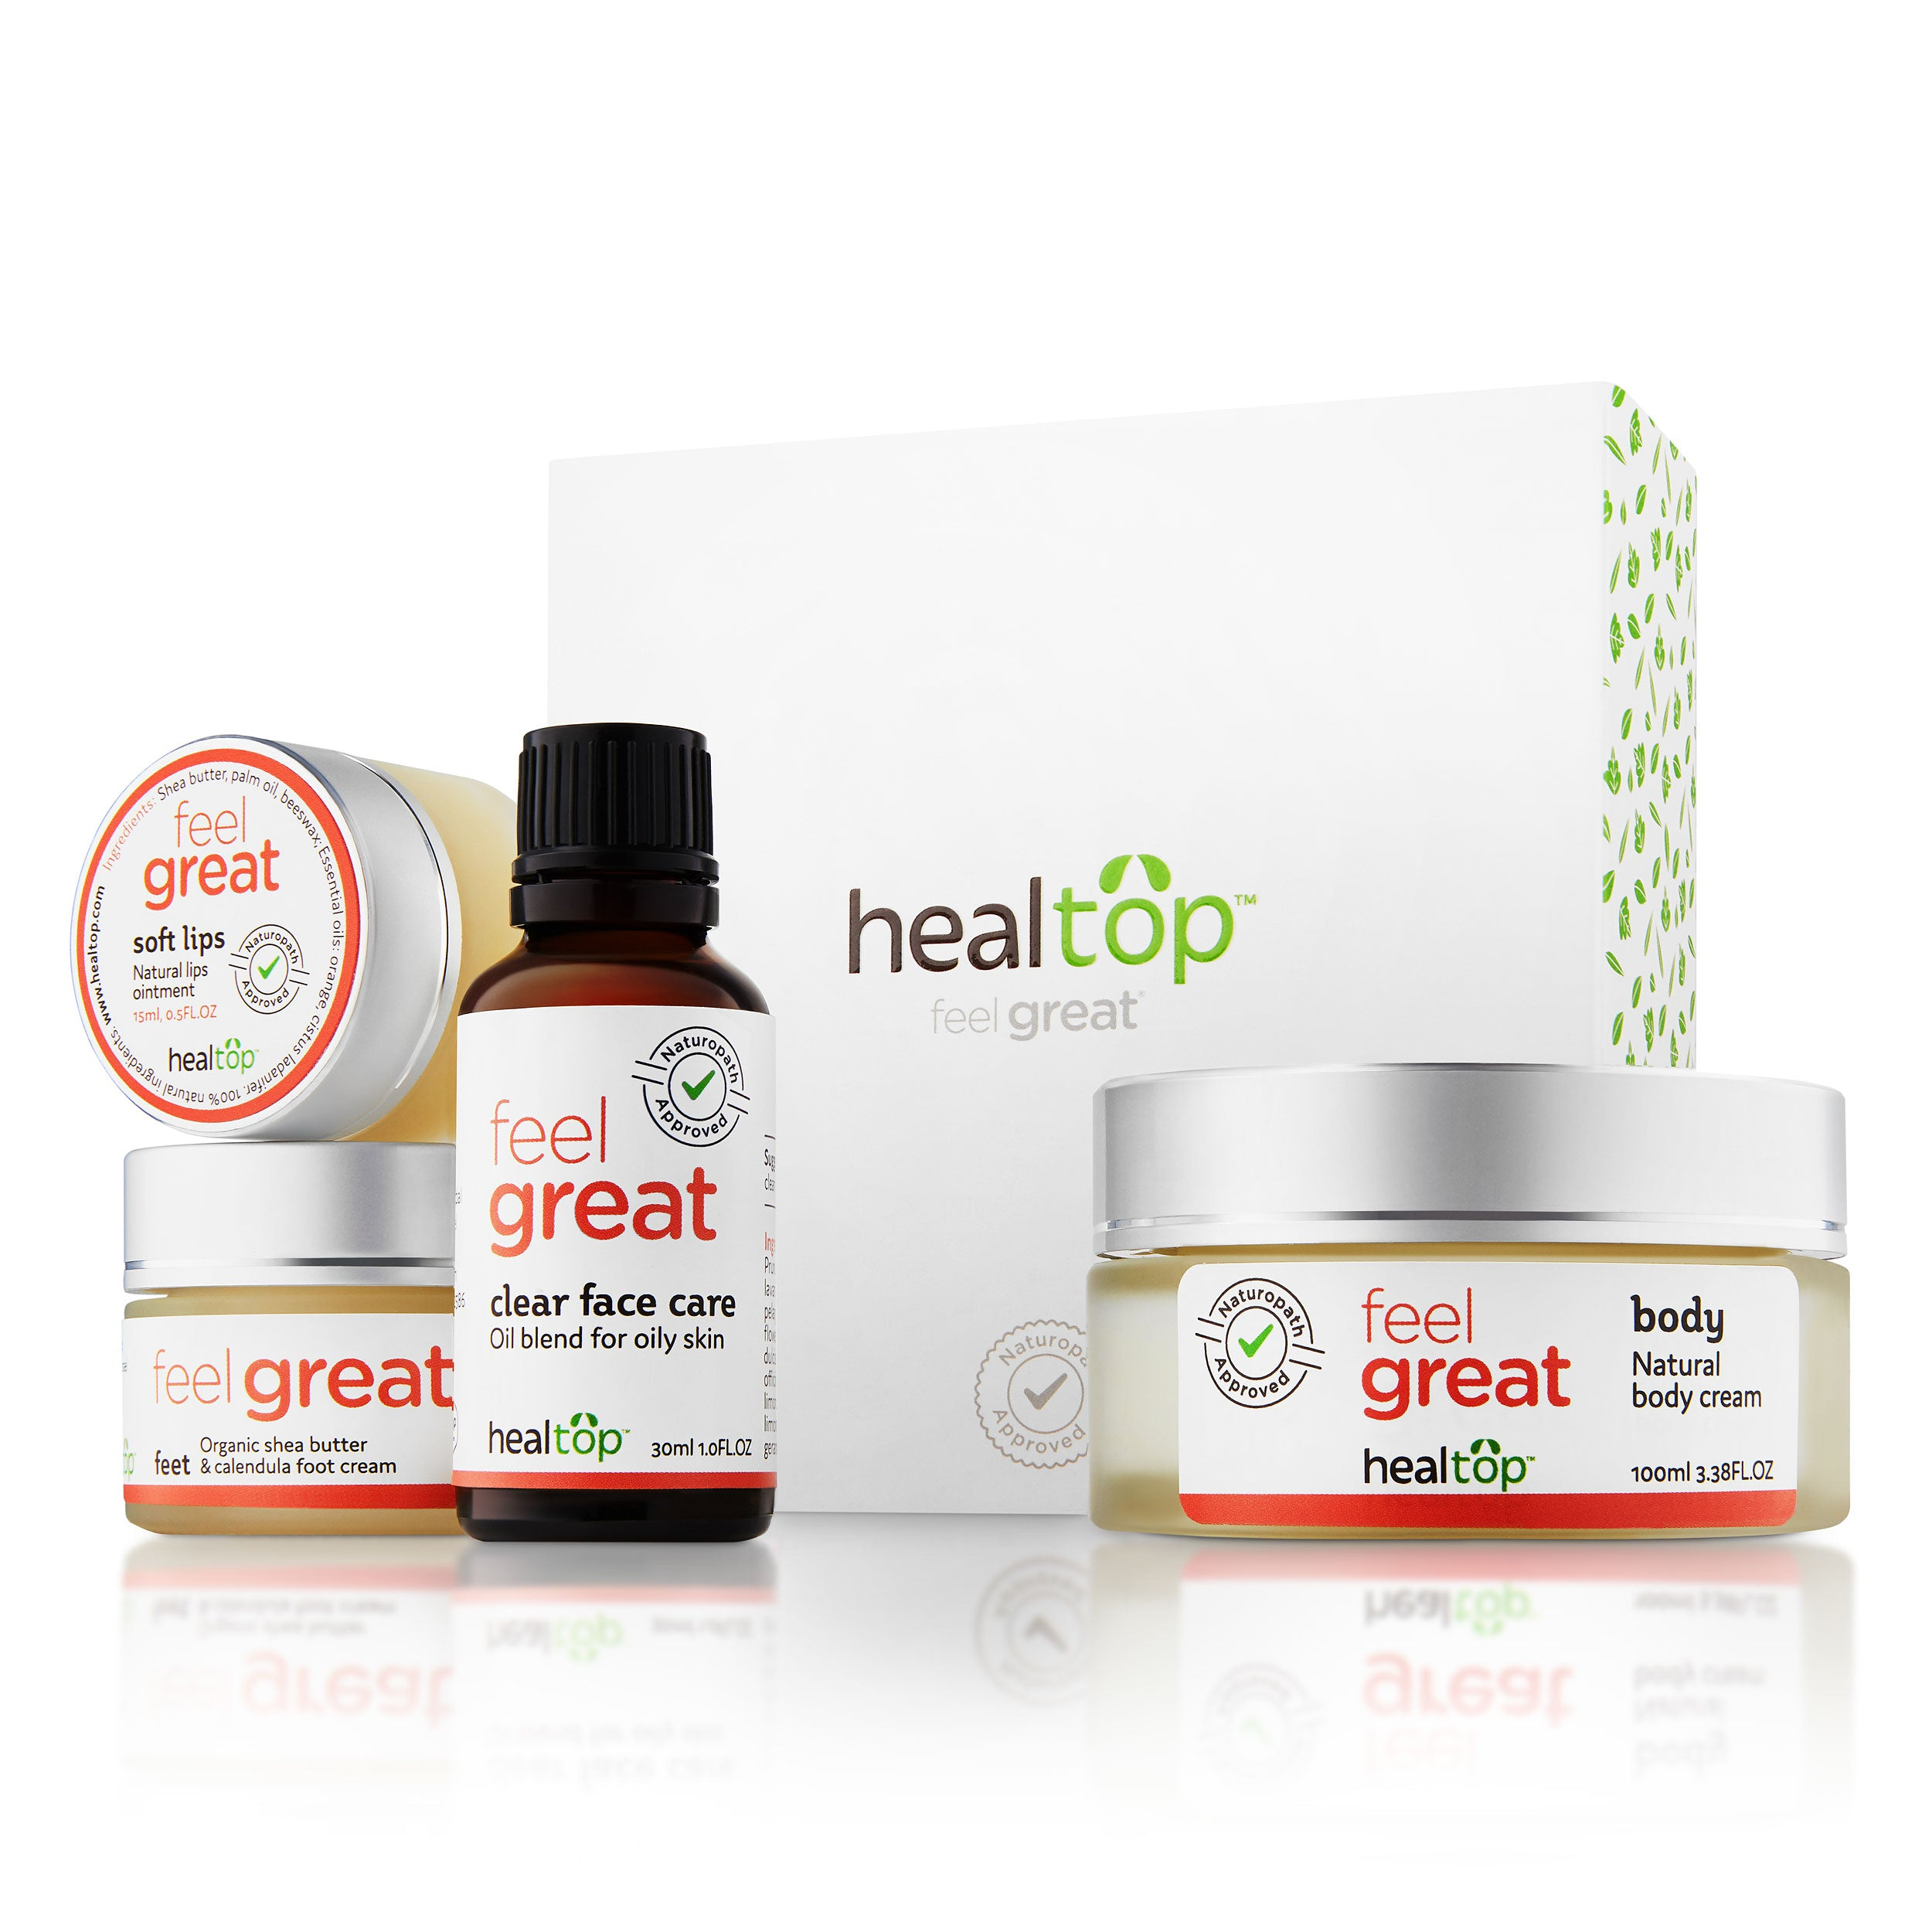 skin care kit - oily skin - Healtop